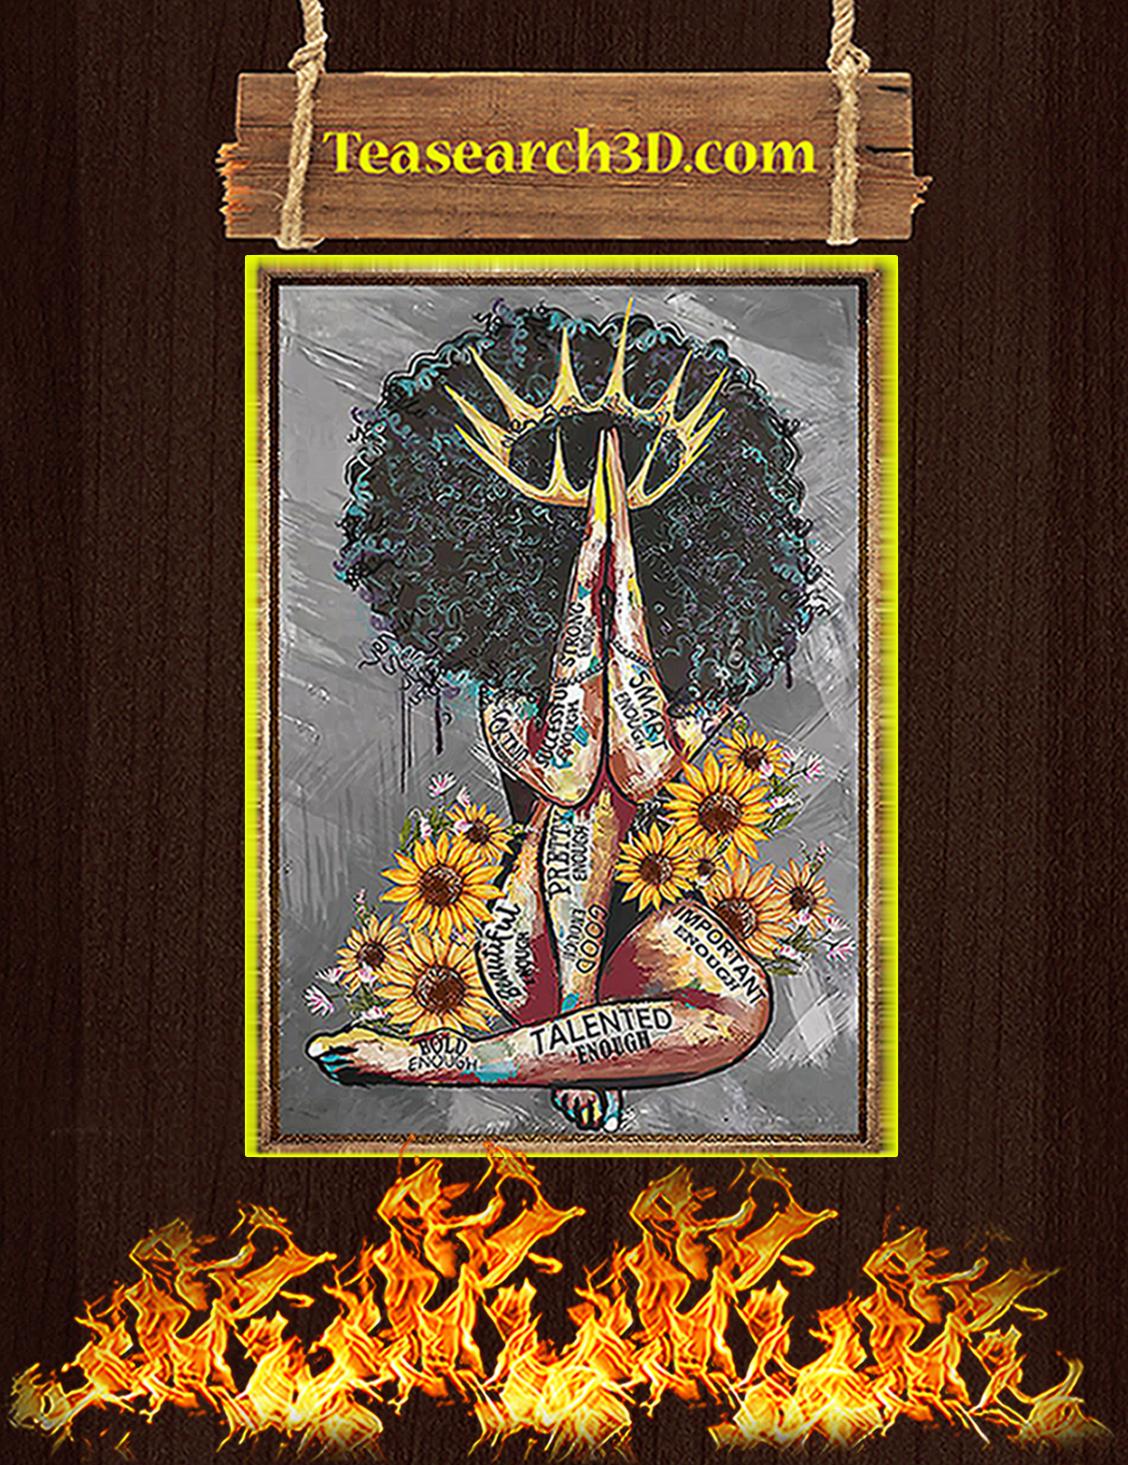 Black queen with sunflowers poster A3